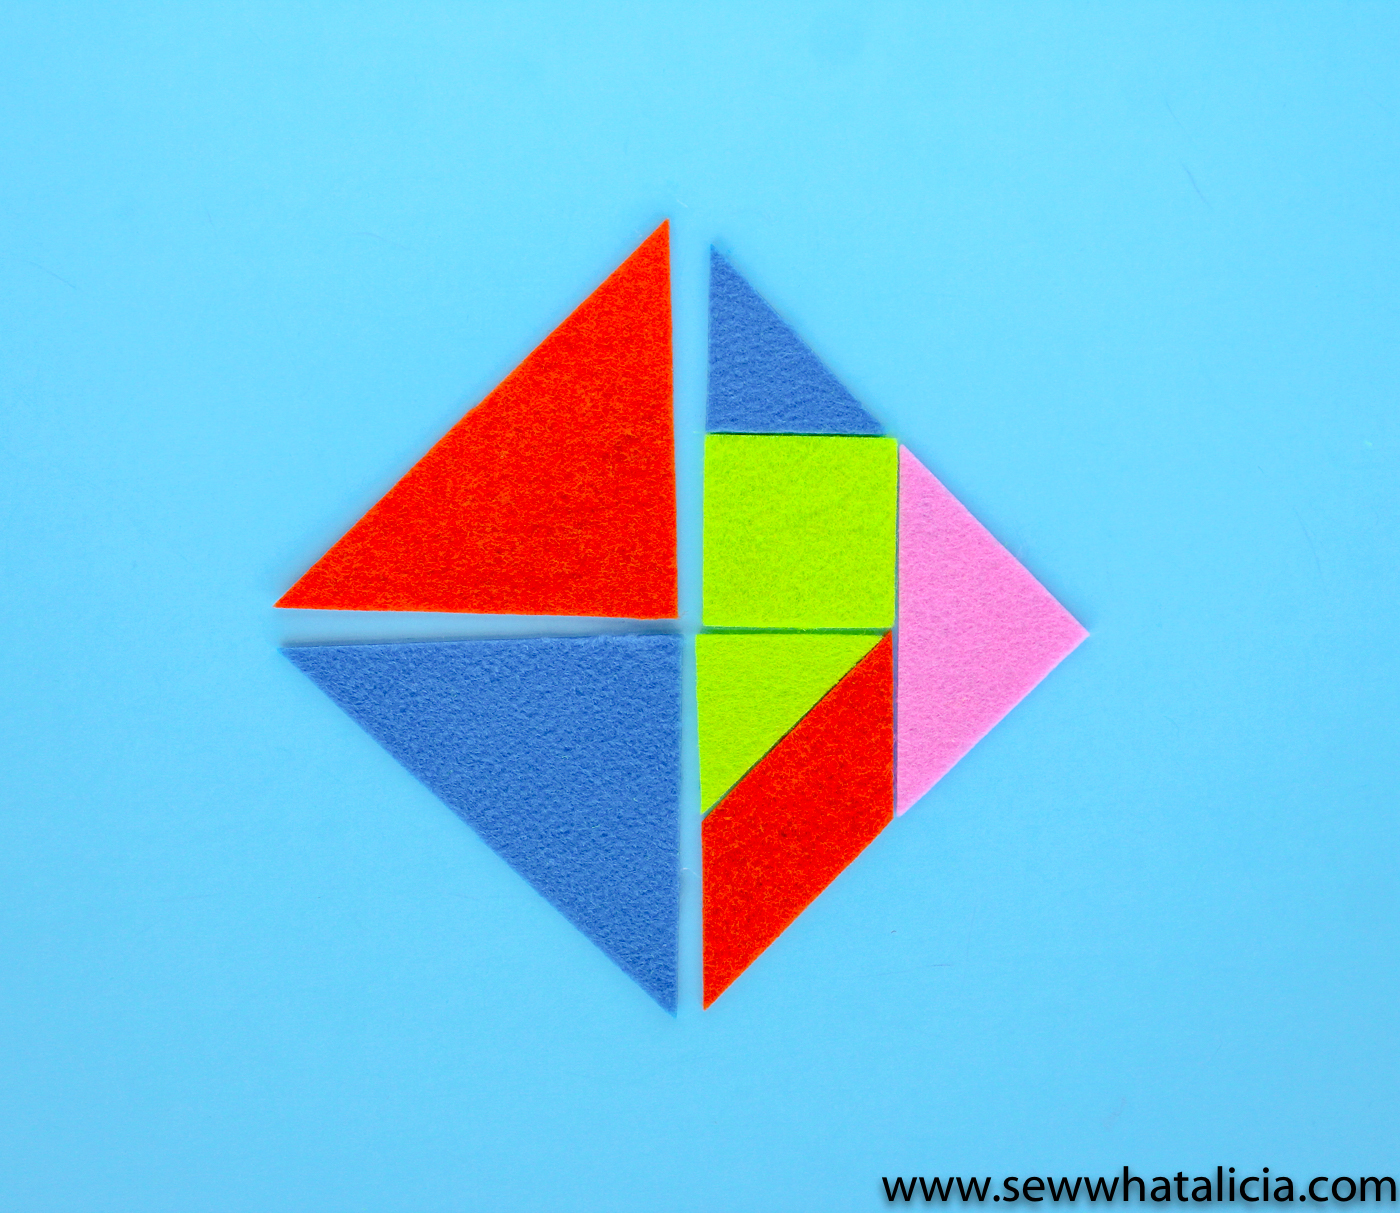 graphic about Printable Tangrams Pdf called Cuttable and Printable Tangrams PDF - Sew What, Alicia?